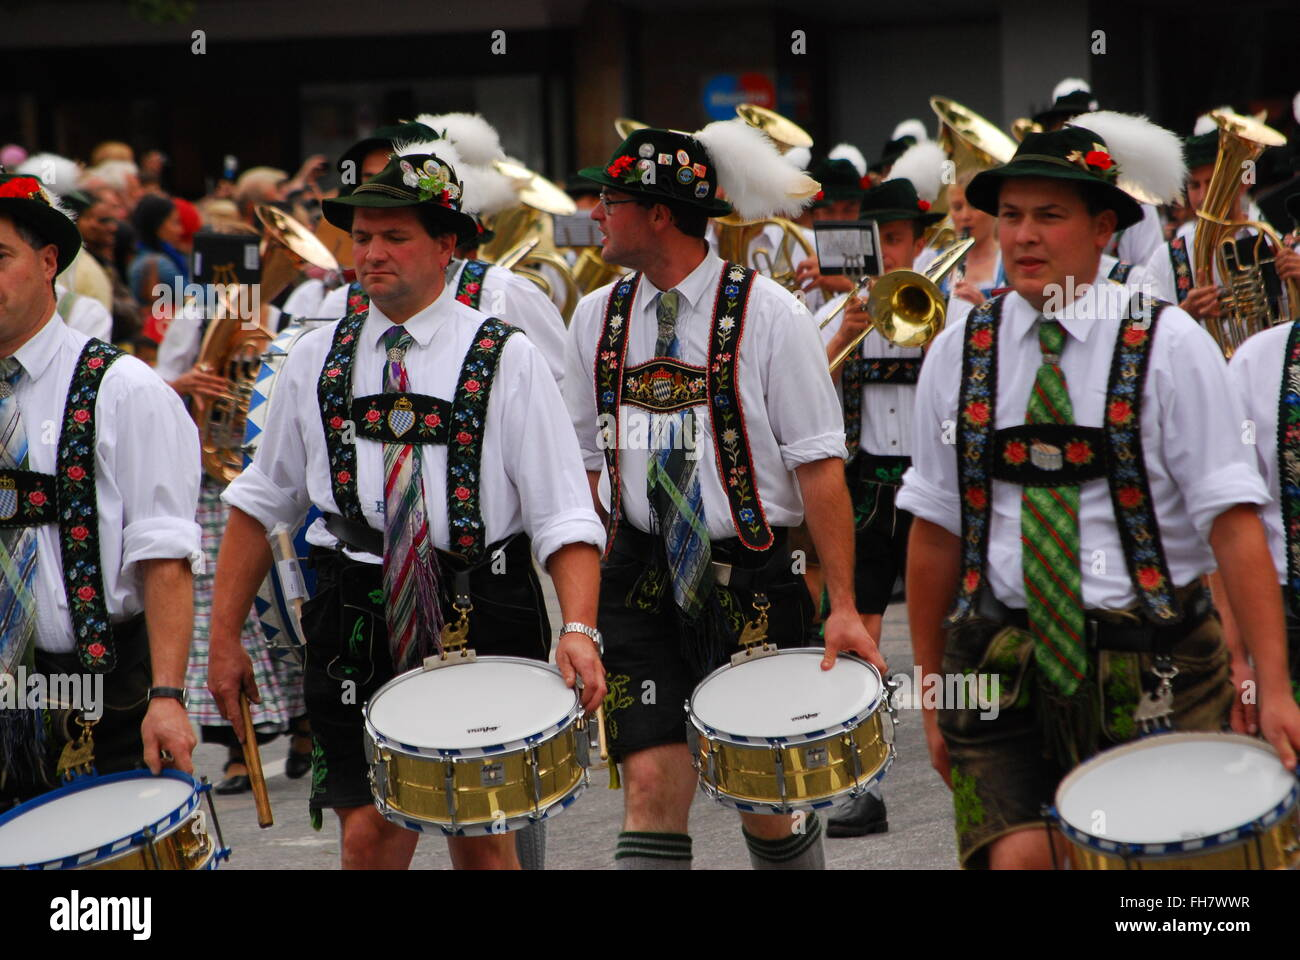 Drummers of bavarian marching band - Stock Image